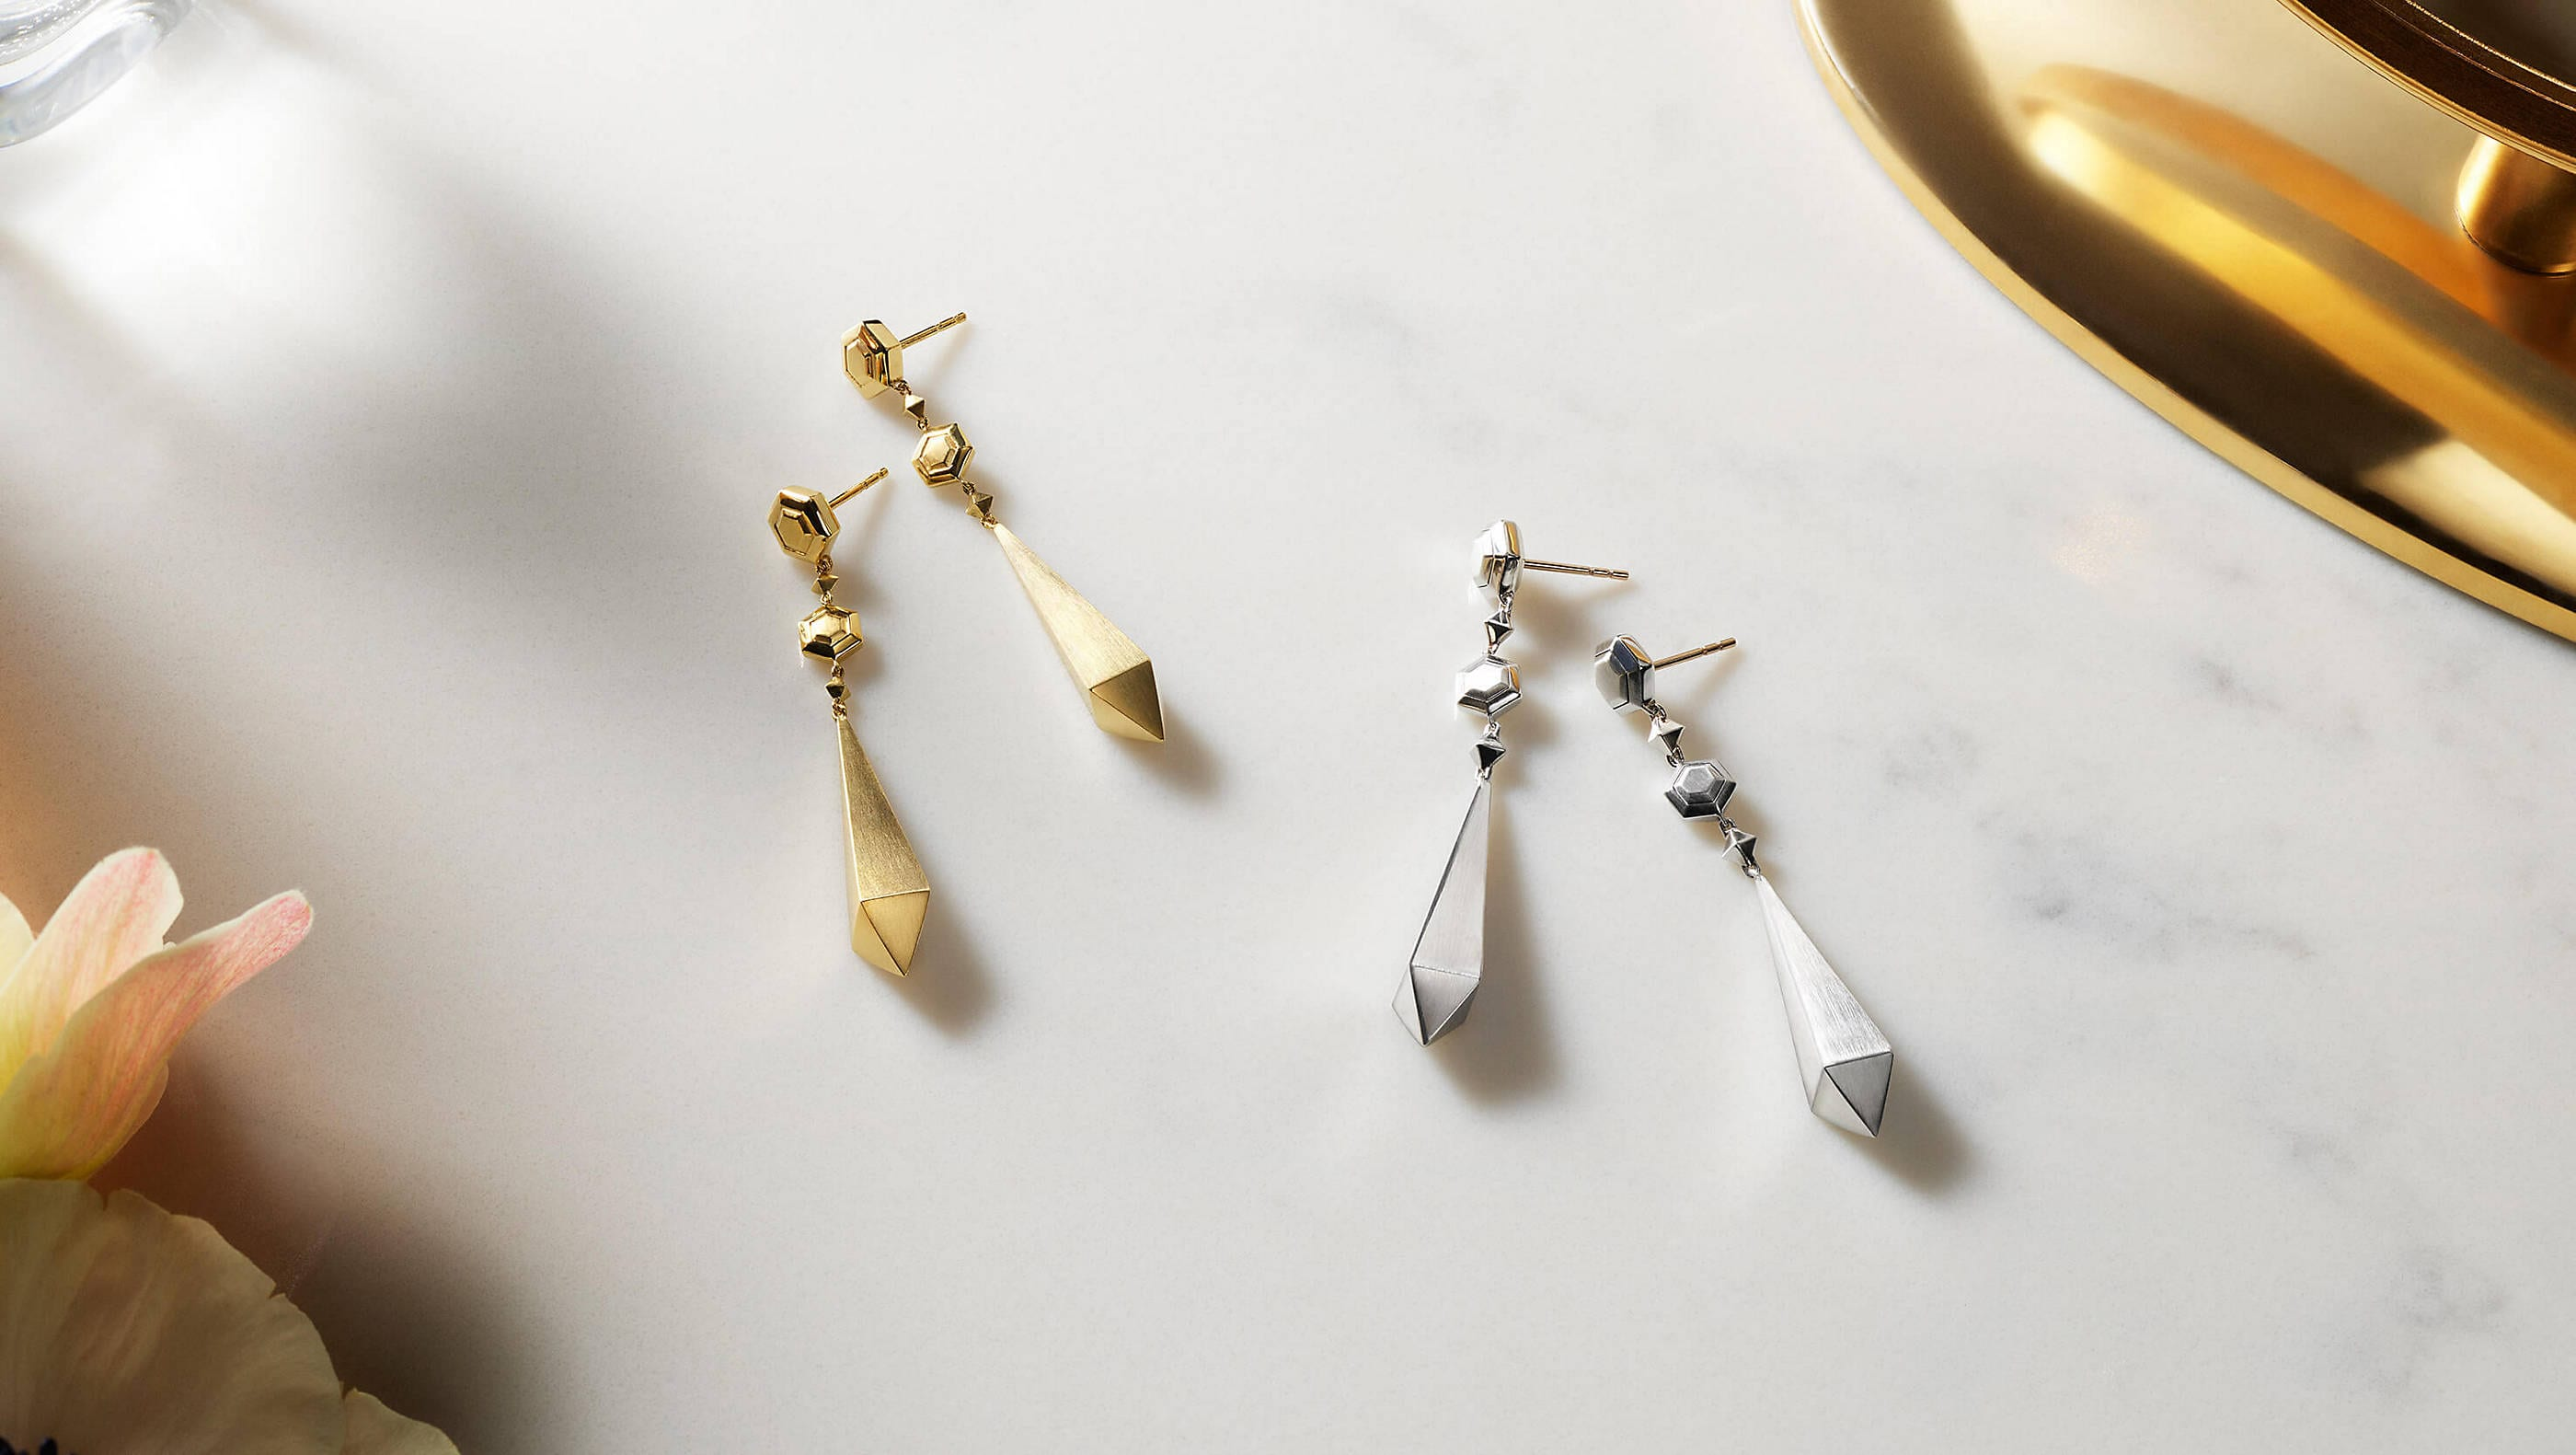 A color photo shows two pairs of David Yurman women's earrings from the Modern Renaissance collection scattered on a grey marble surface nearby a white-and-pink flower, a perfume bottle and a golden tray. One pair is crafted from 18K yellow gold and the other pair is crafted from sterling silver.